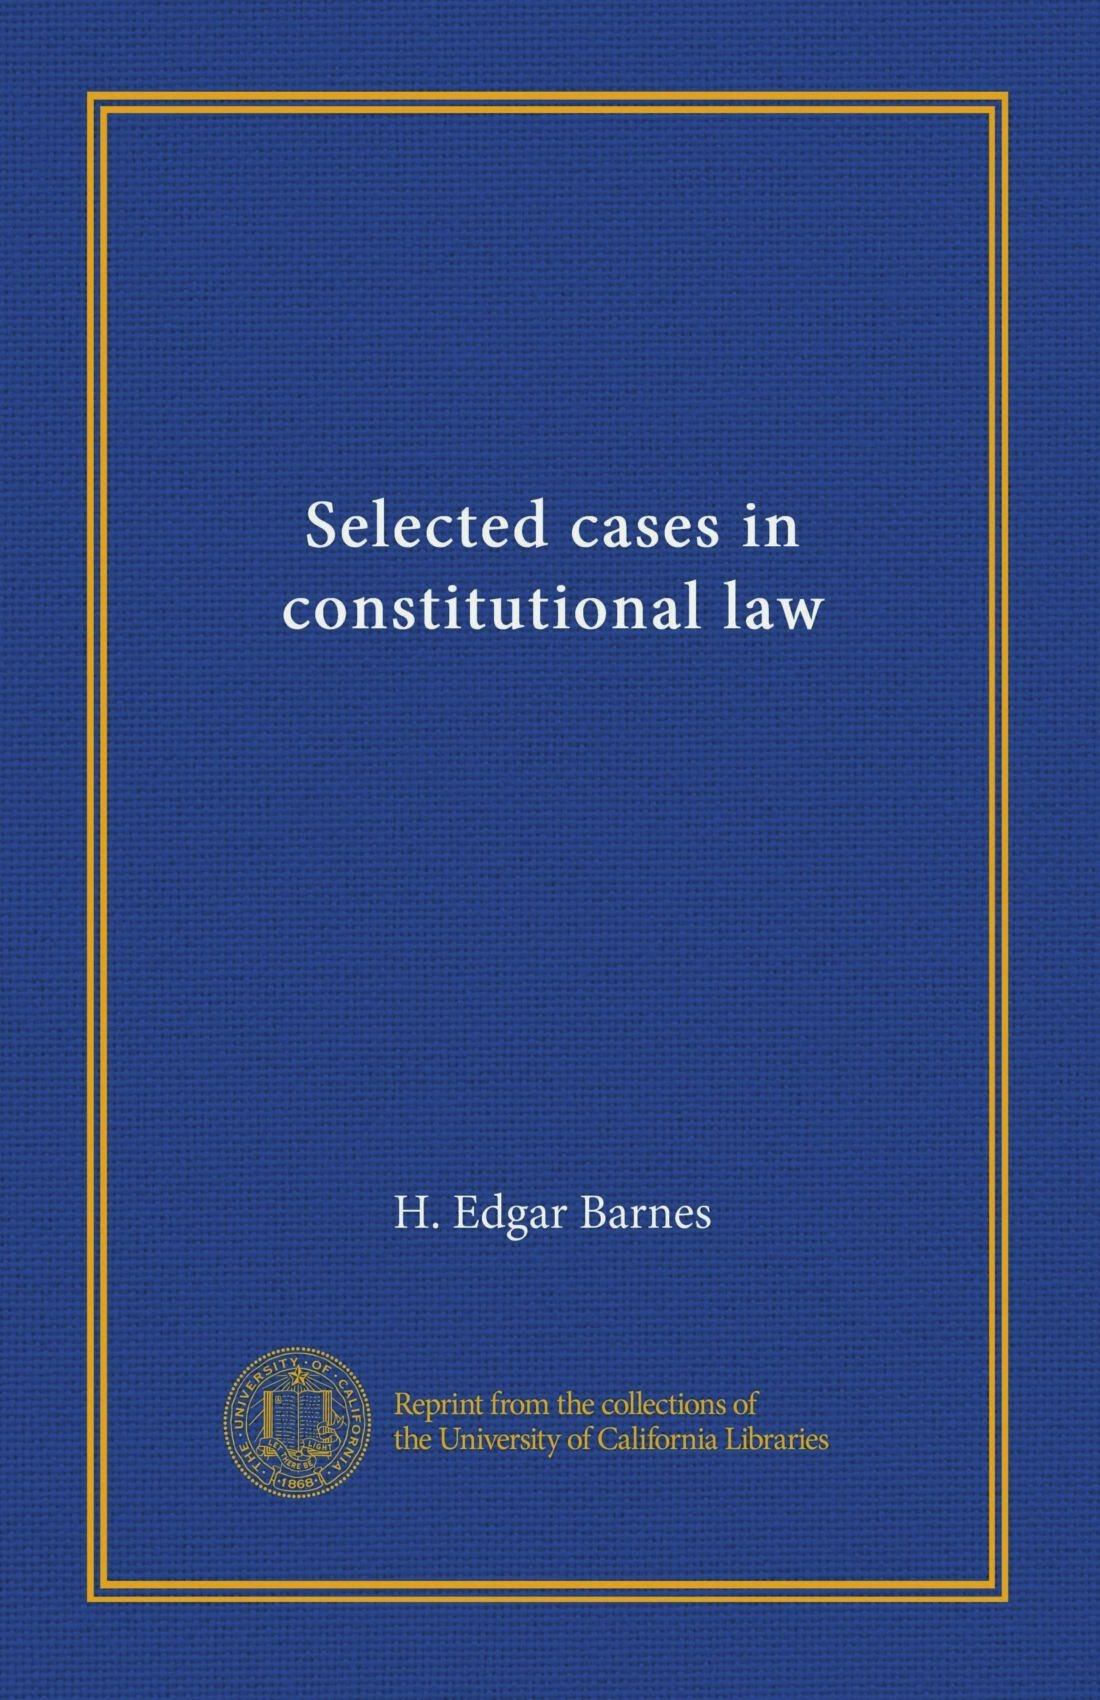 Download Selected cases in constitutional law ebook